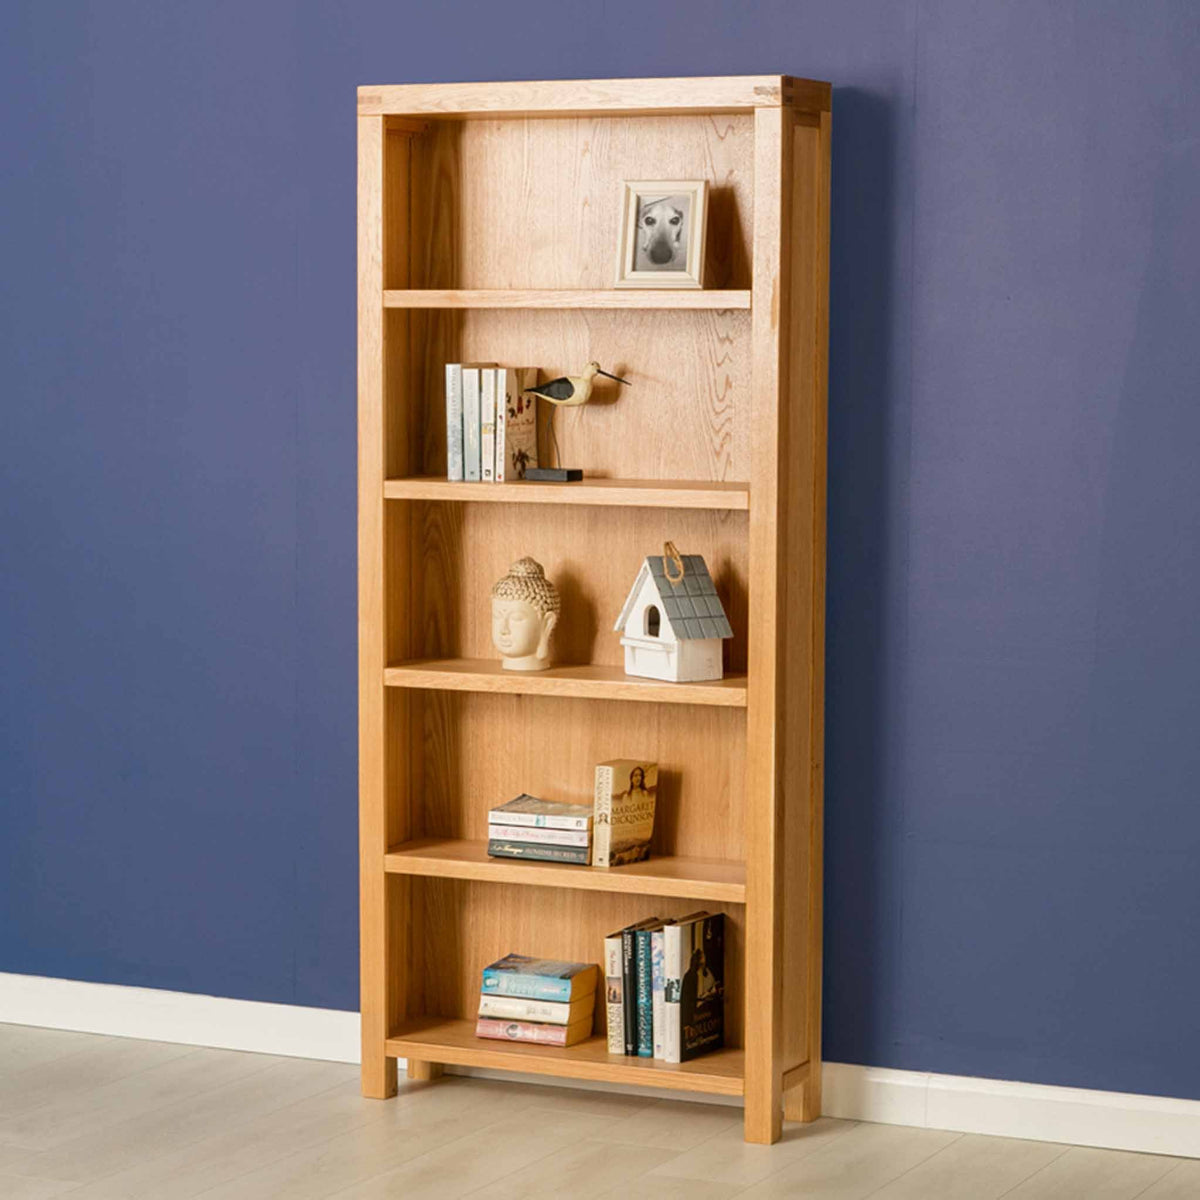 The Abbey Light Oak Tall Bookcase by Roseland Furniture